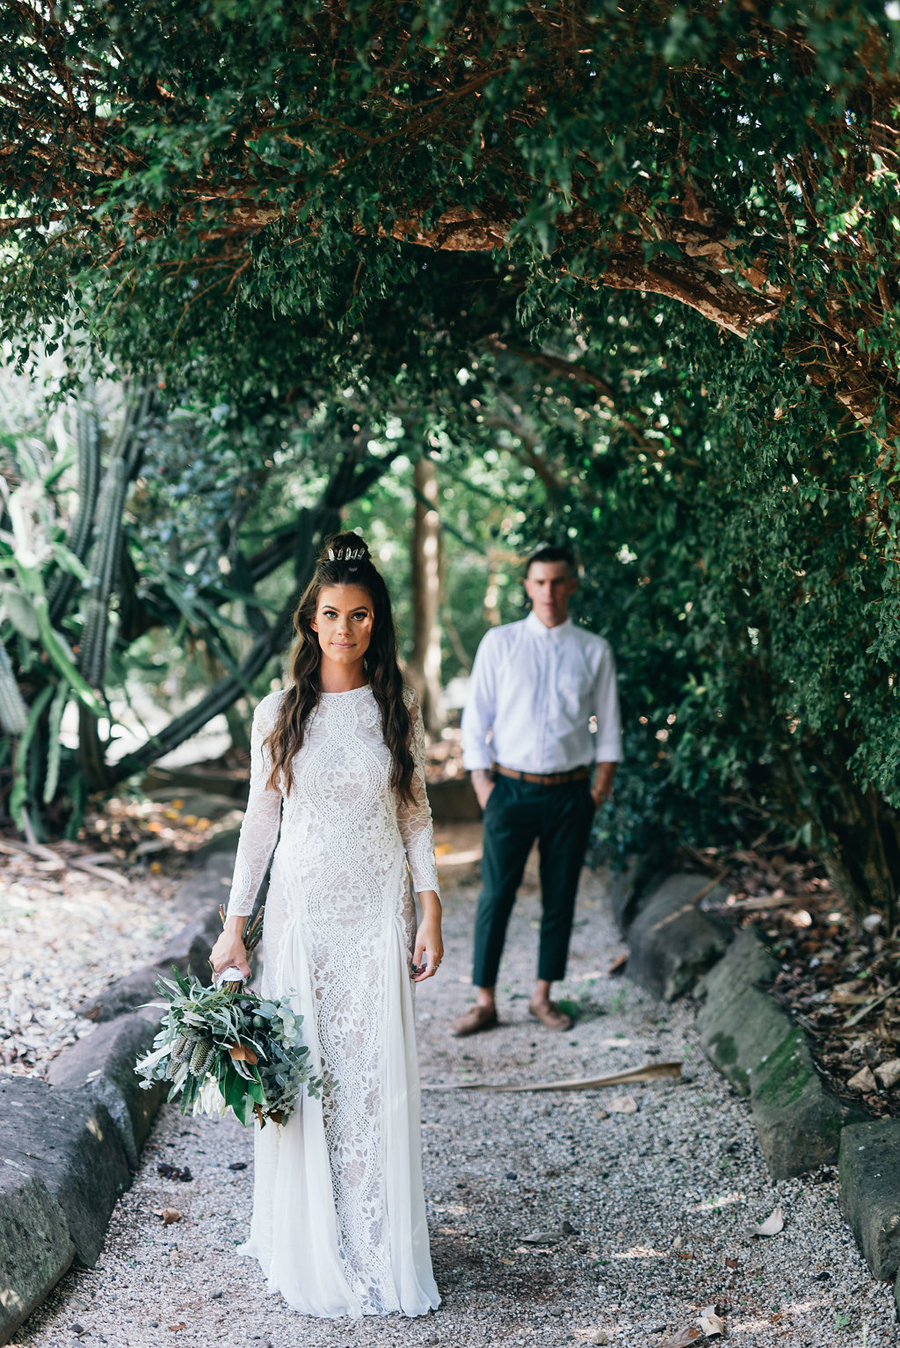 tweed-coast-weddings-wedding-venue-osteria-casuarina-figtree-pictures-photography-brittney-and-justin035.jpg